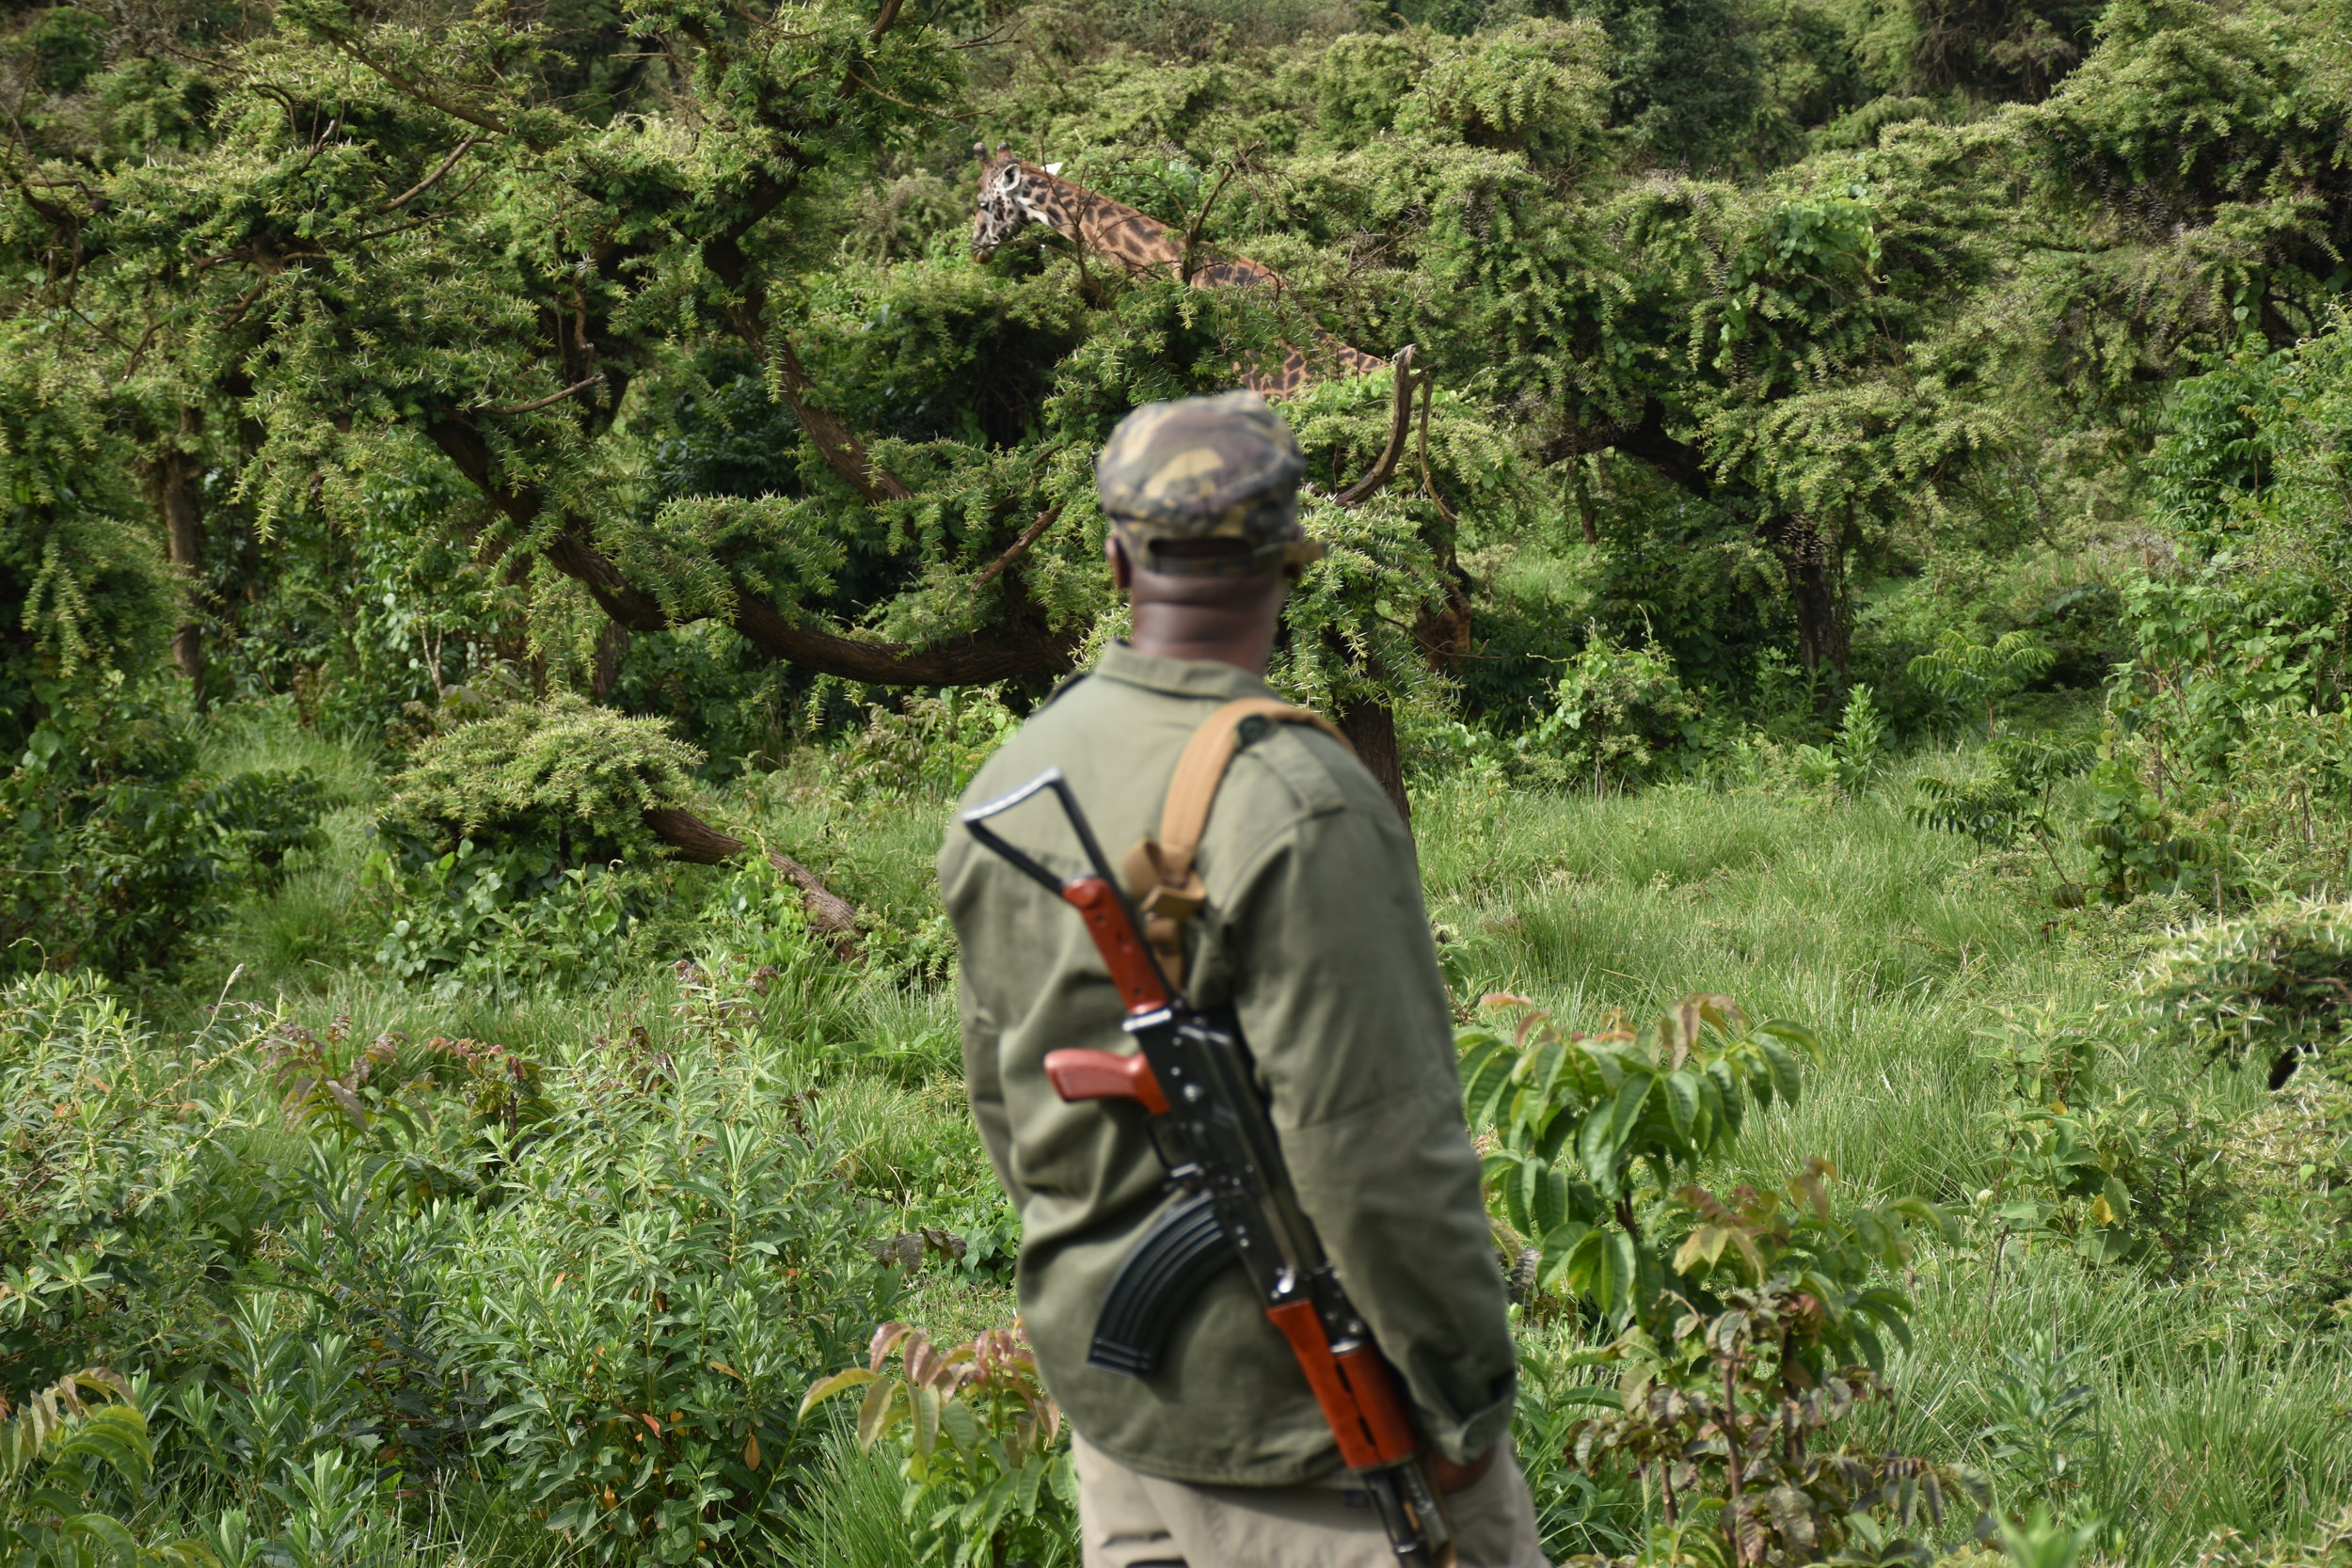 our ranger guide with a submachine gun